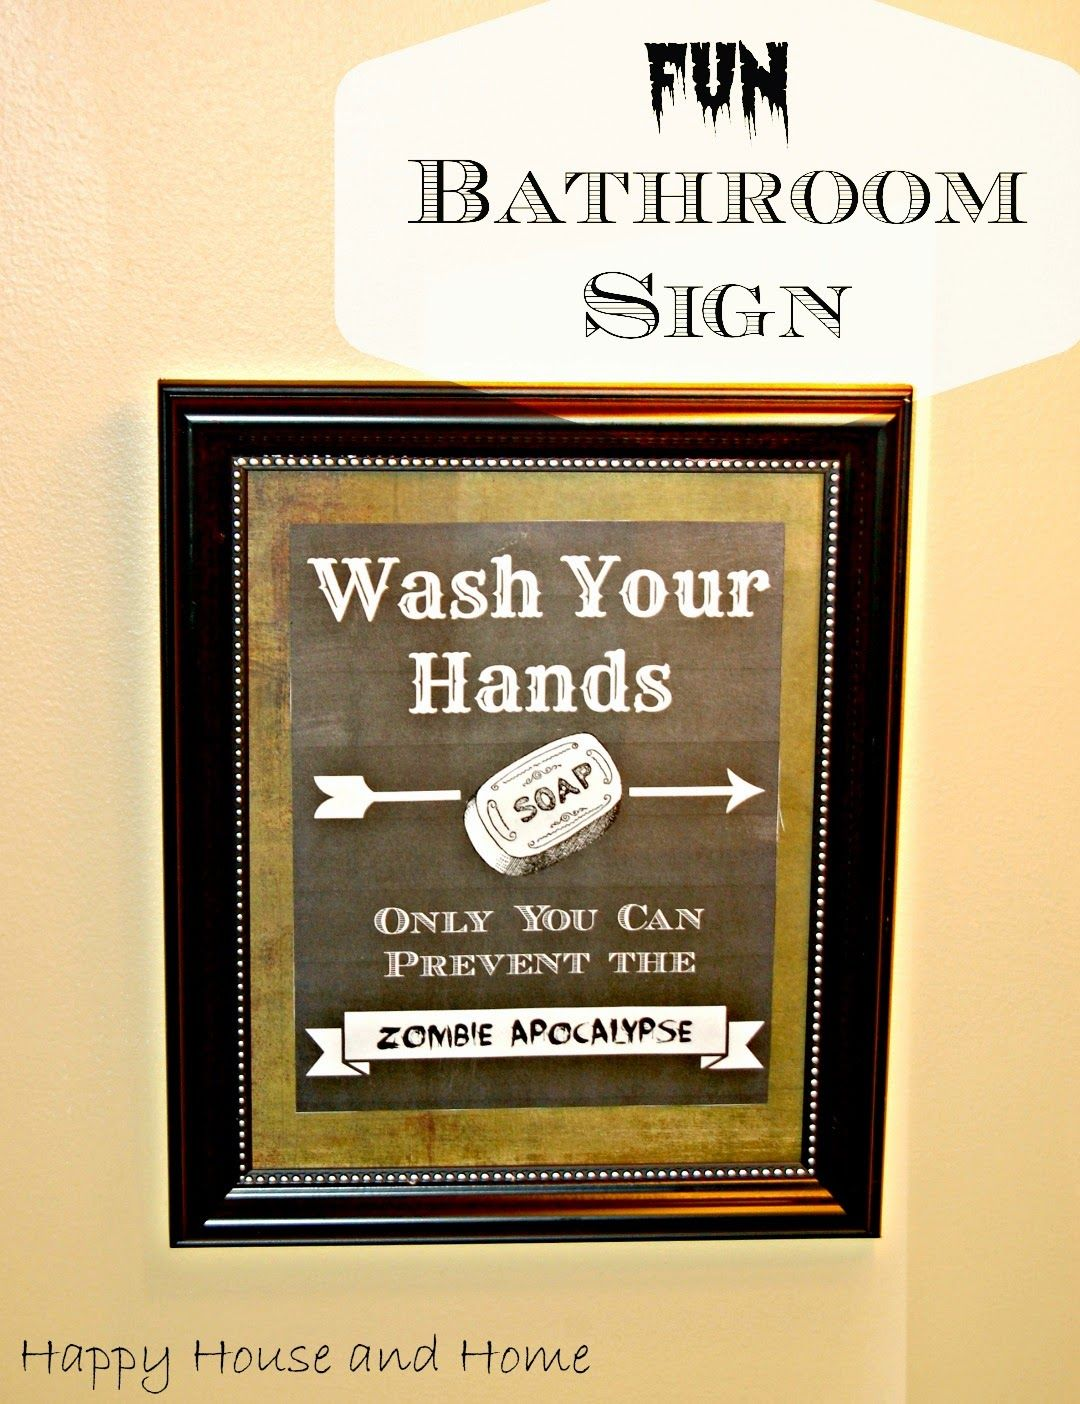 Bathroom sign for home - Bathroom Signs Funny Diy Signs Funny Signs Kid Bathrooms Bathroom Ideas House And Home Free Printable Halloween Bathroom Halloween Party